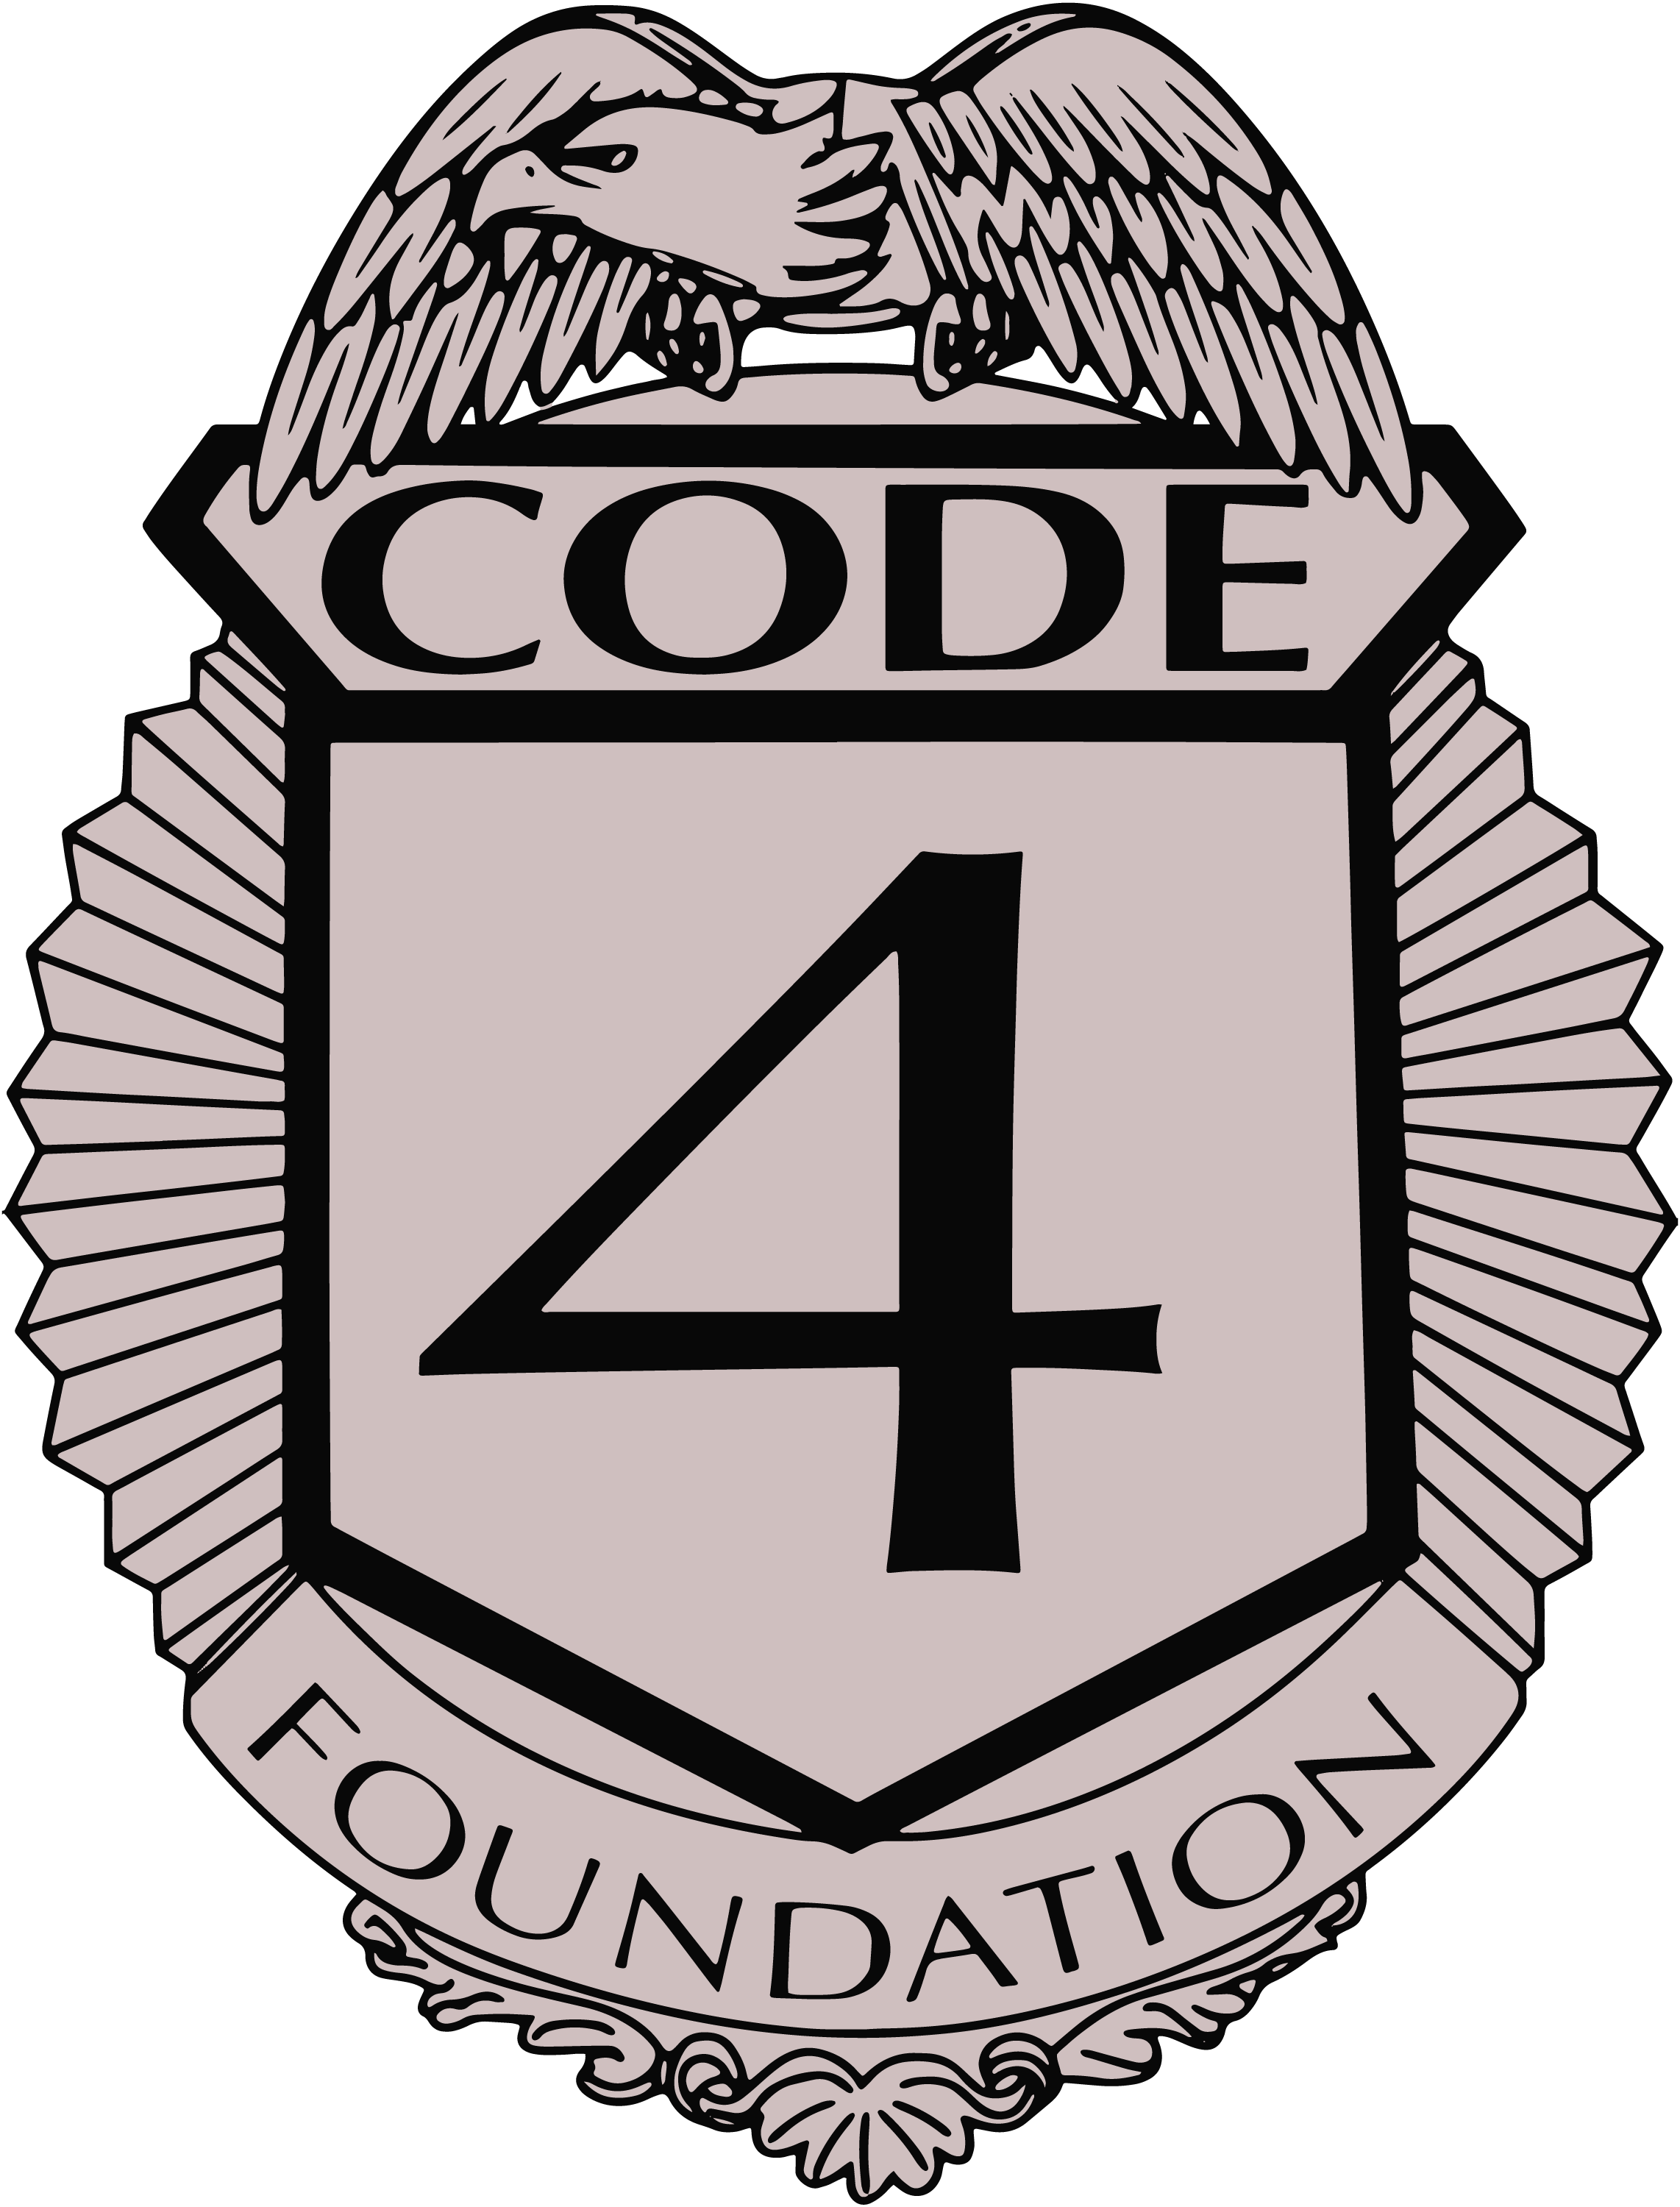 Code 4 Foundation